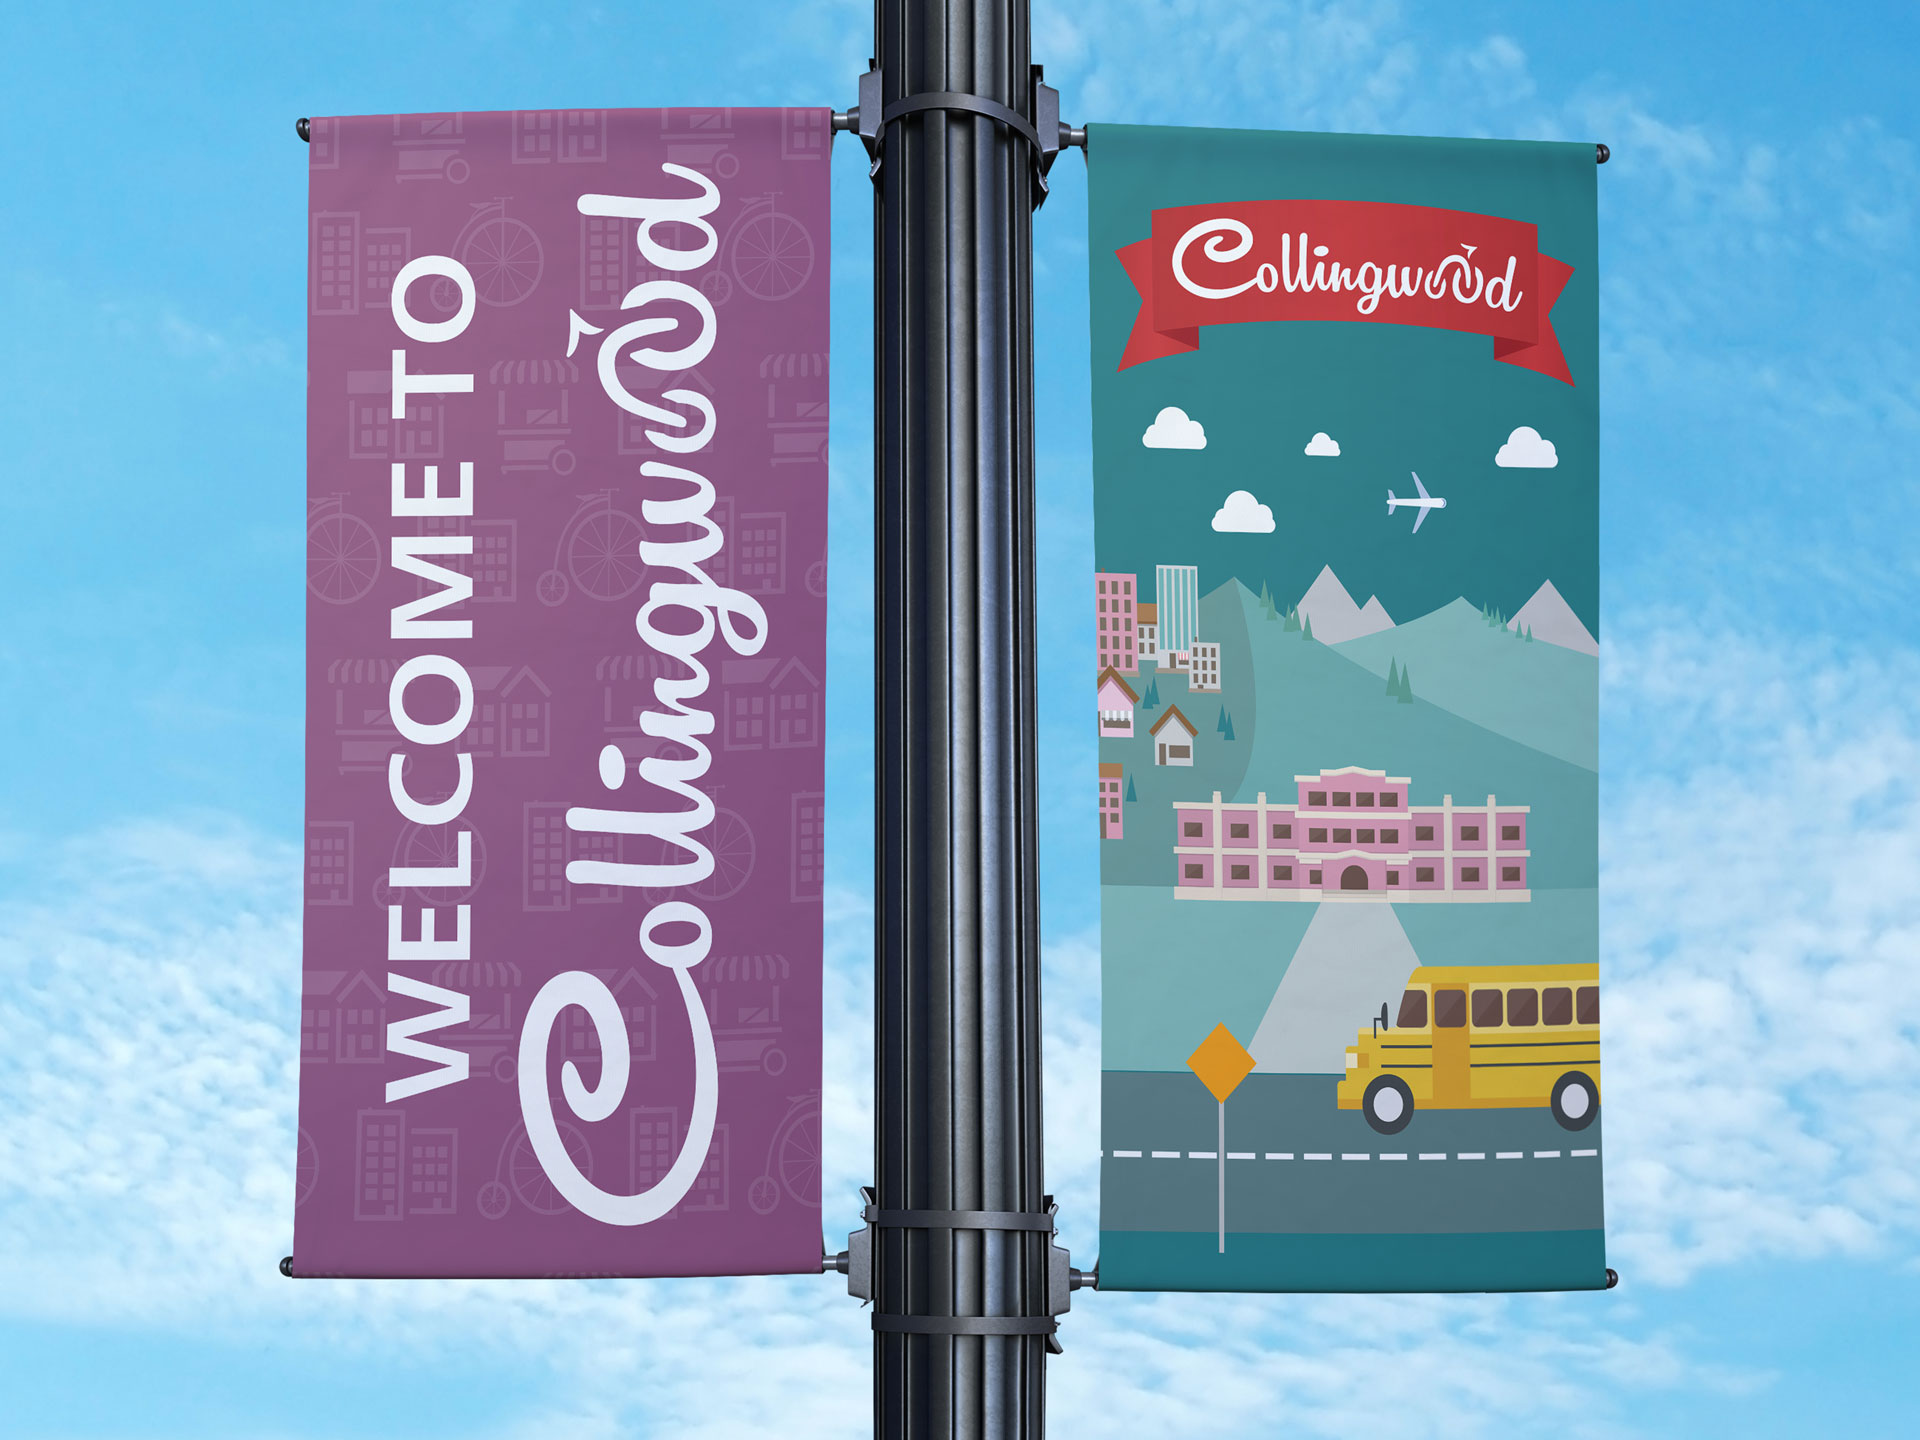 Collingwood BIA street Banner Vancouver Graphic Design by Gustavo Chams